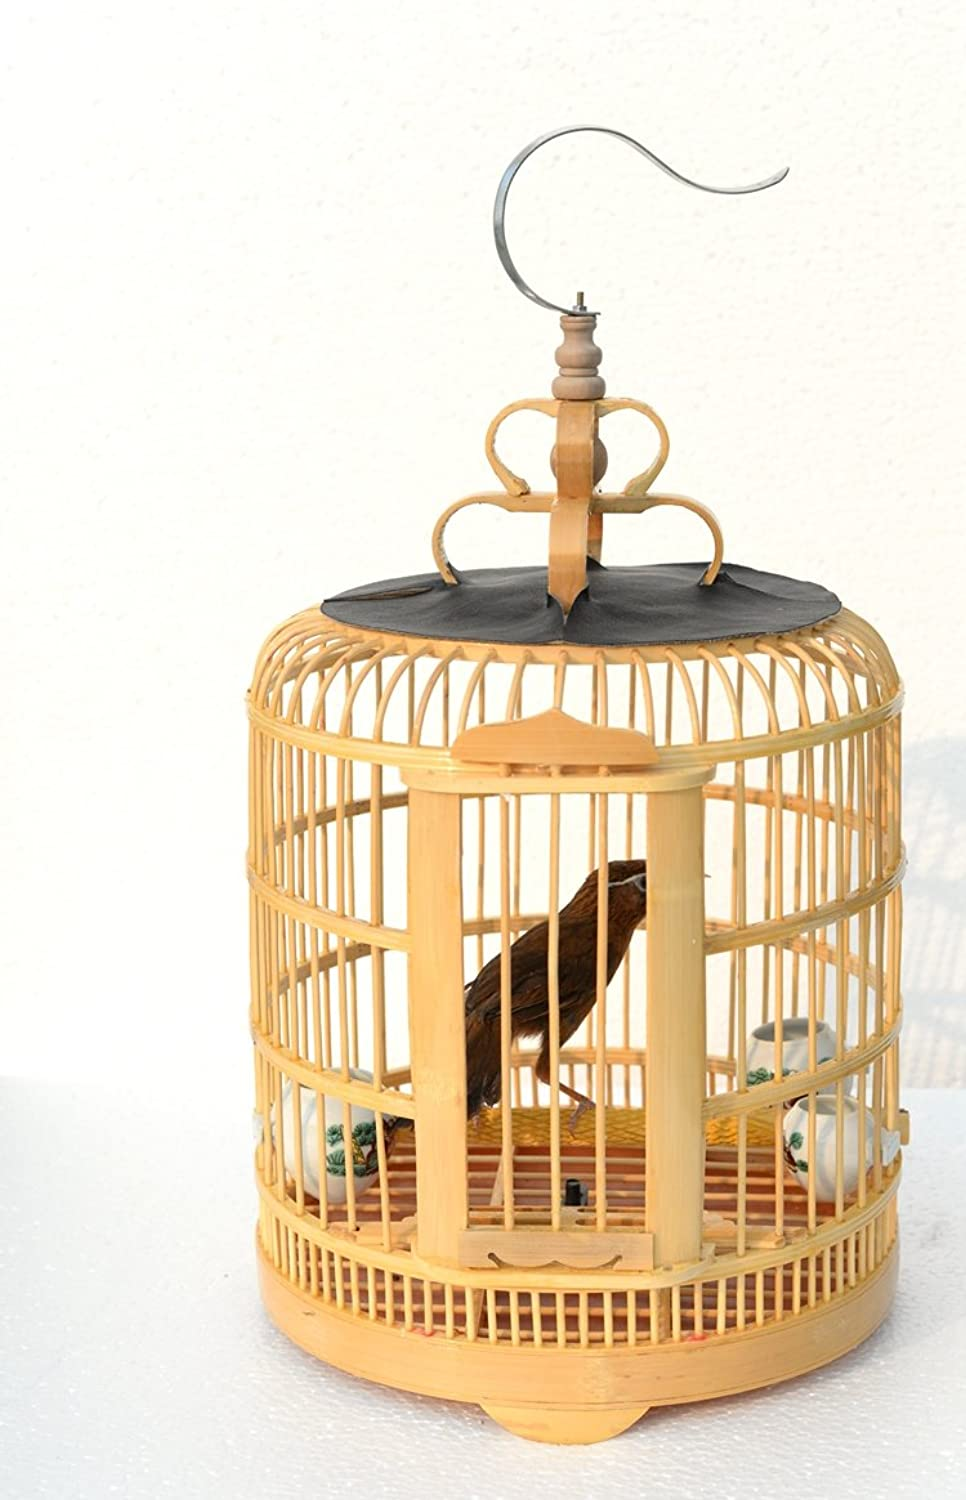 Handmade bamboo birdcage and pet products Parred cage bird cage [yellow and primary colors] (primary color)